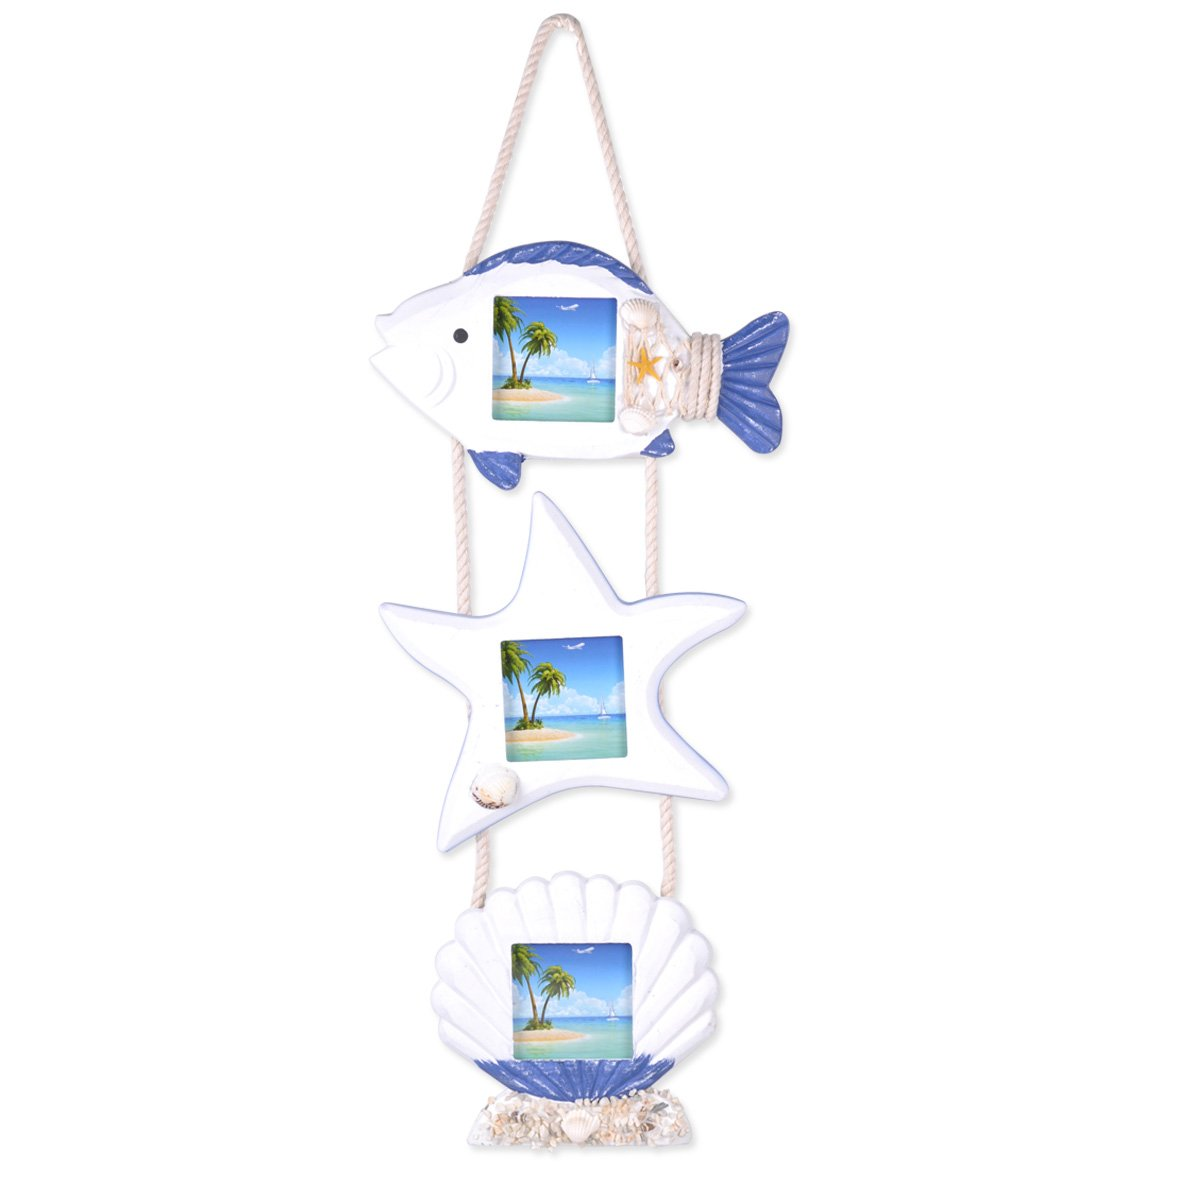 eZAKKA Blue and White Mediterranean Style Picture Frames Home Decoration Handcrafted Wooden Combination for 3 Nonstandard Square Pictures